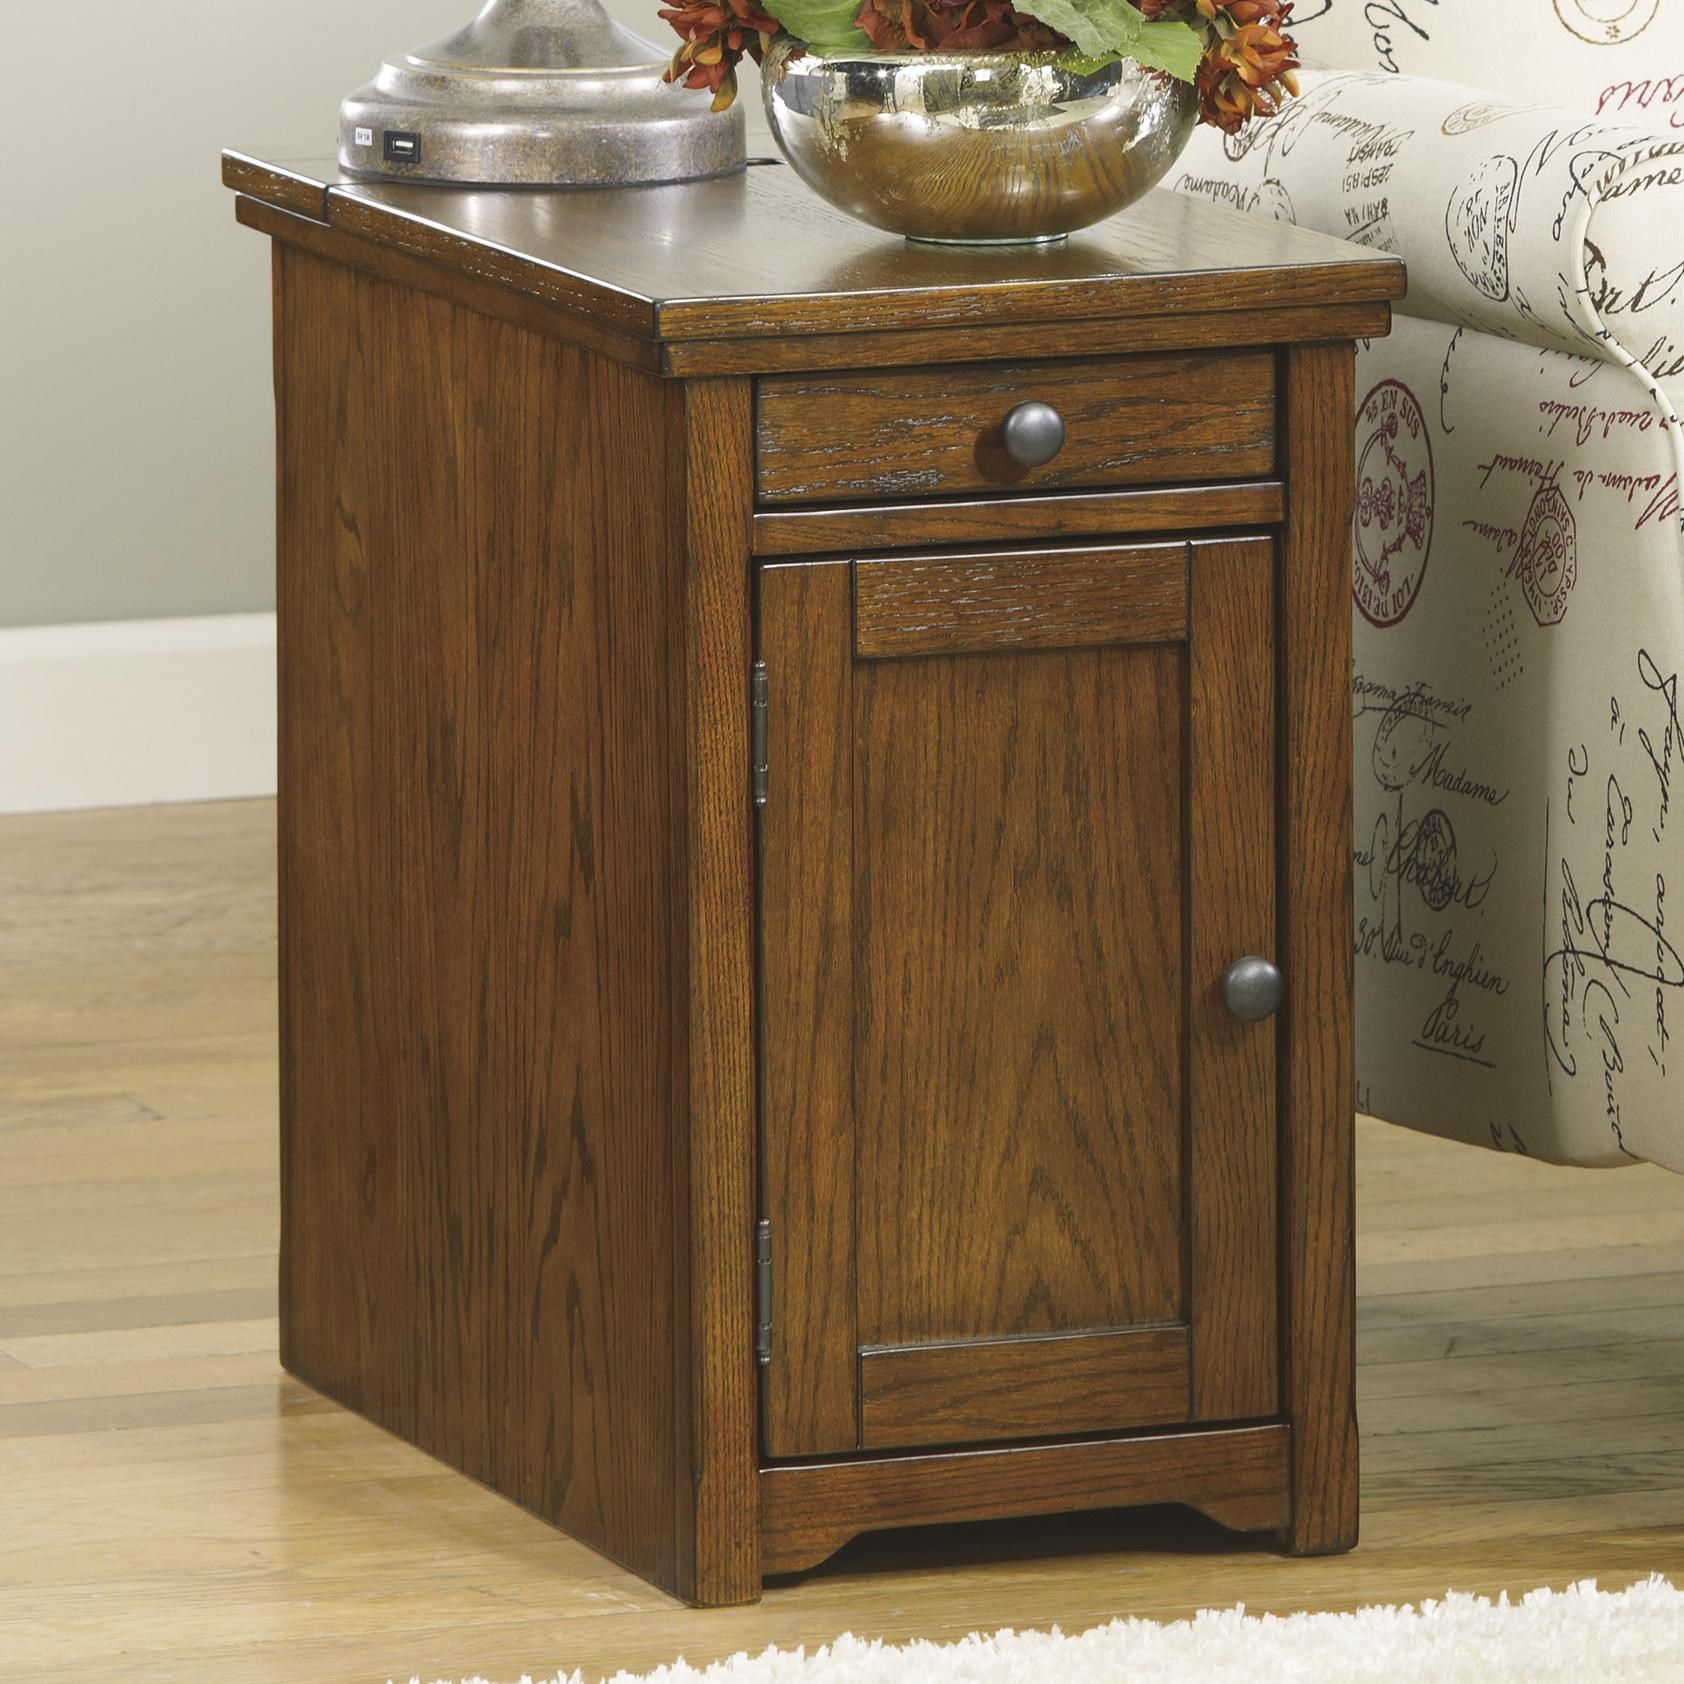 prodigious Ashley End Table With Power Part - 2: Signature Design by Ashley LaflornChair Side End Table ...